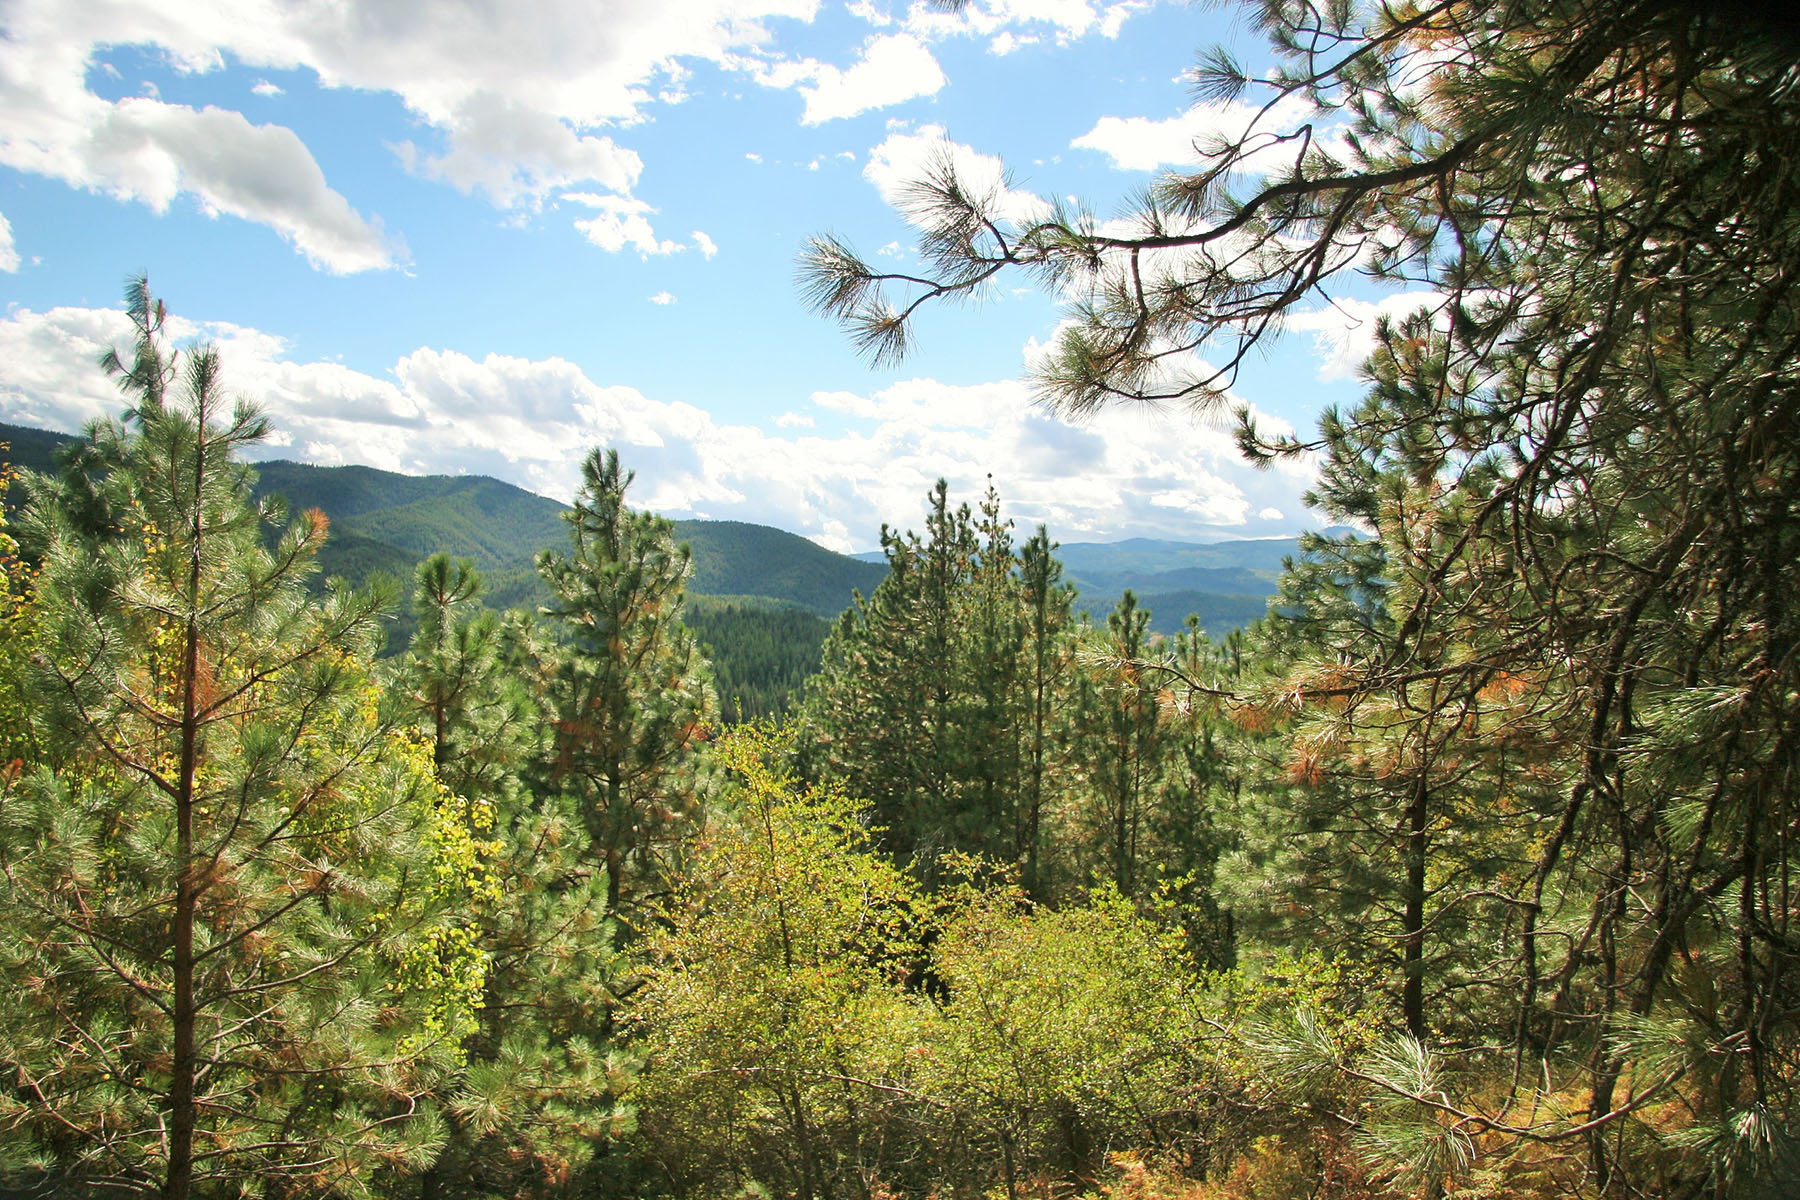 Terreno por un Venta en 40 acres with amazing views overlooking the Silver Valley NNA South Fork Ridge 40-2 Smelterville, Idaho, 83868 Estados Unidos